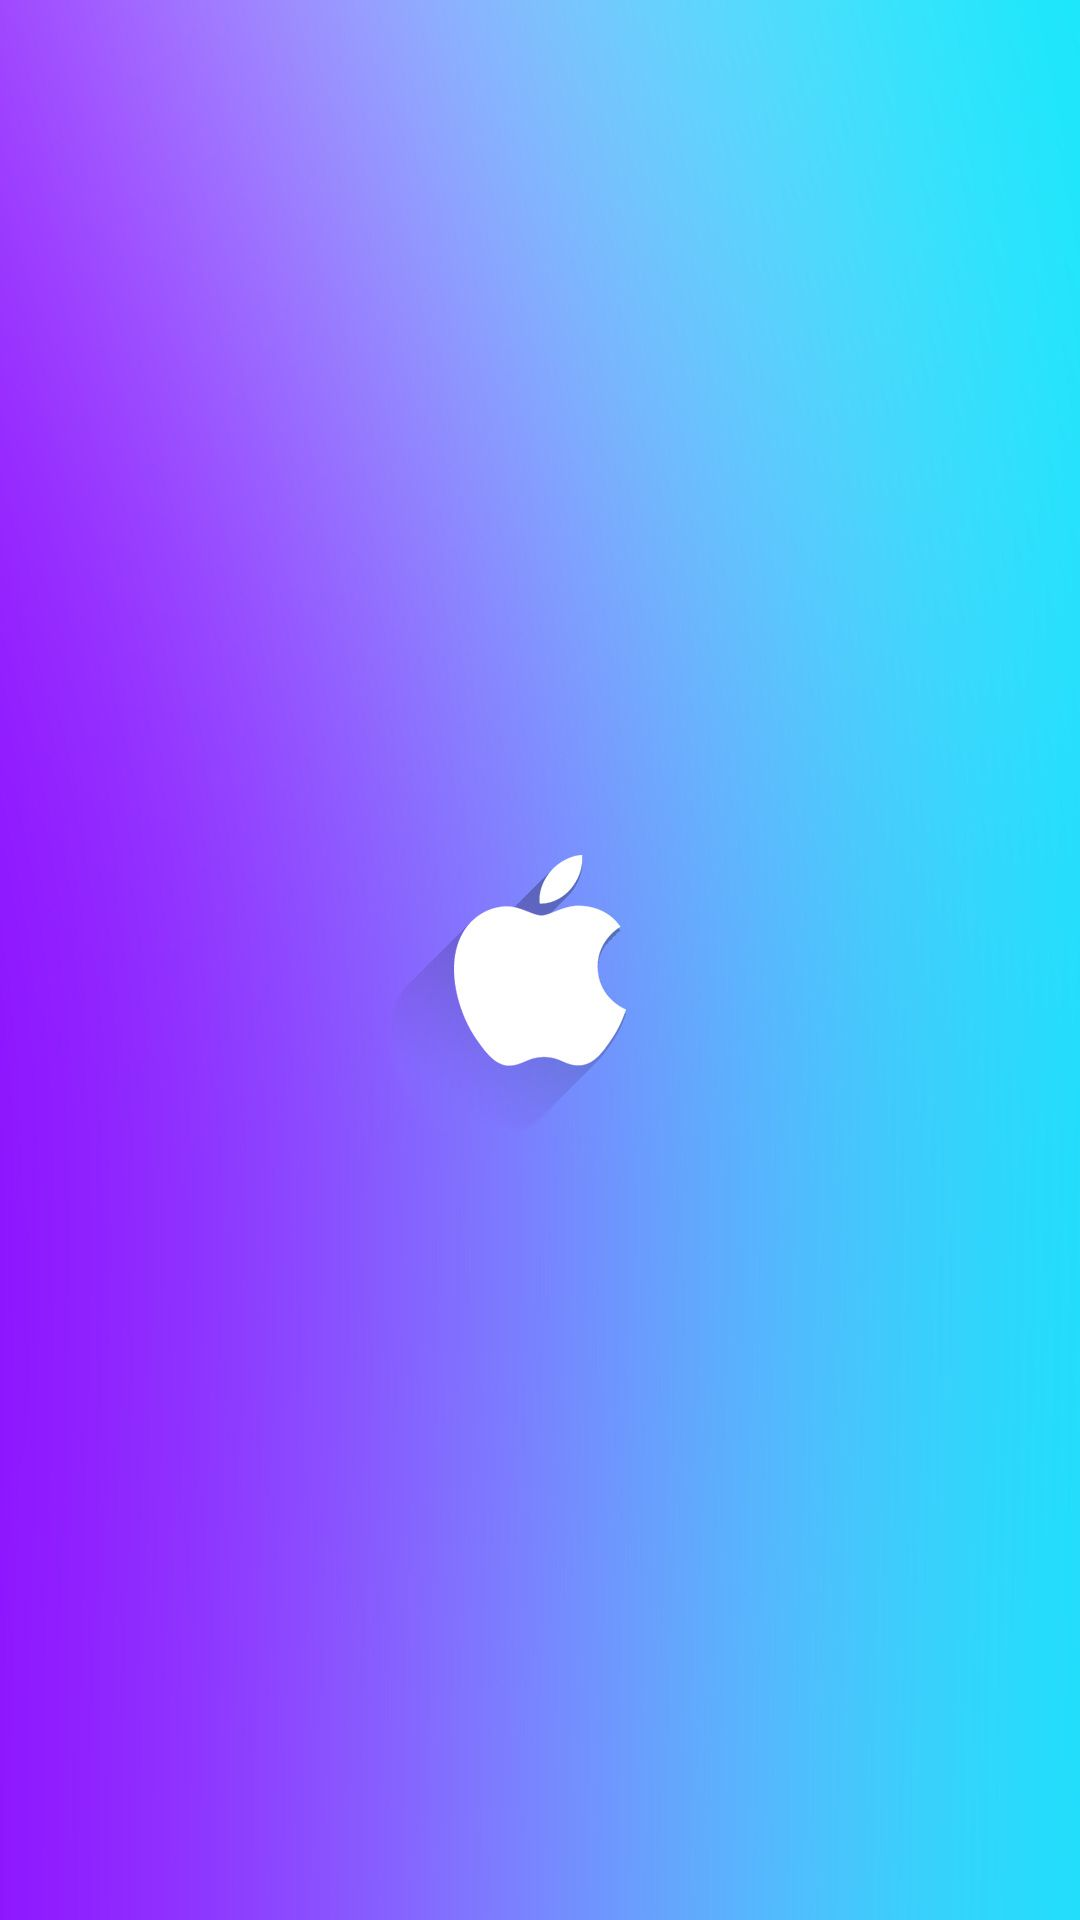 Check Out This Wallpaper For Your Iphone Http Zedge Net W10611090 Src Ios V 2 5 Via Ze Iphone Wallpaper Glitter Apple Wallpaper Apple Logo Wallpaper Iphone